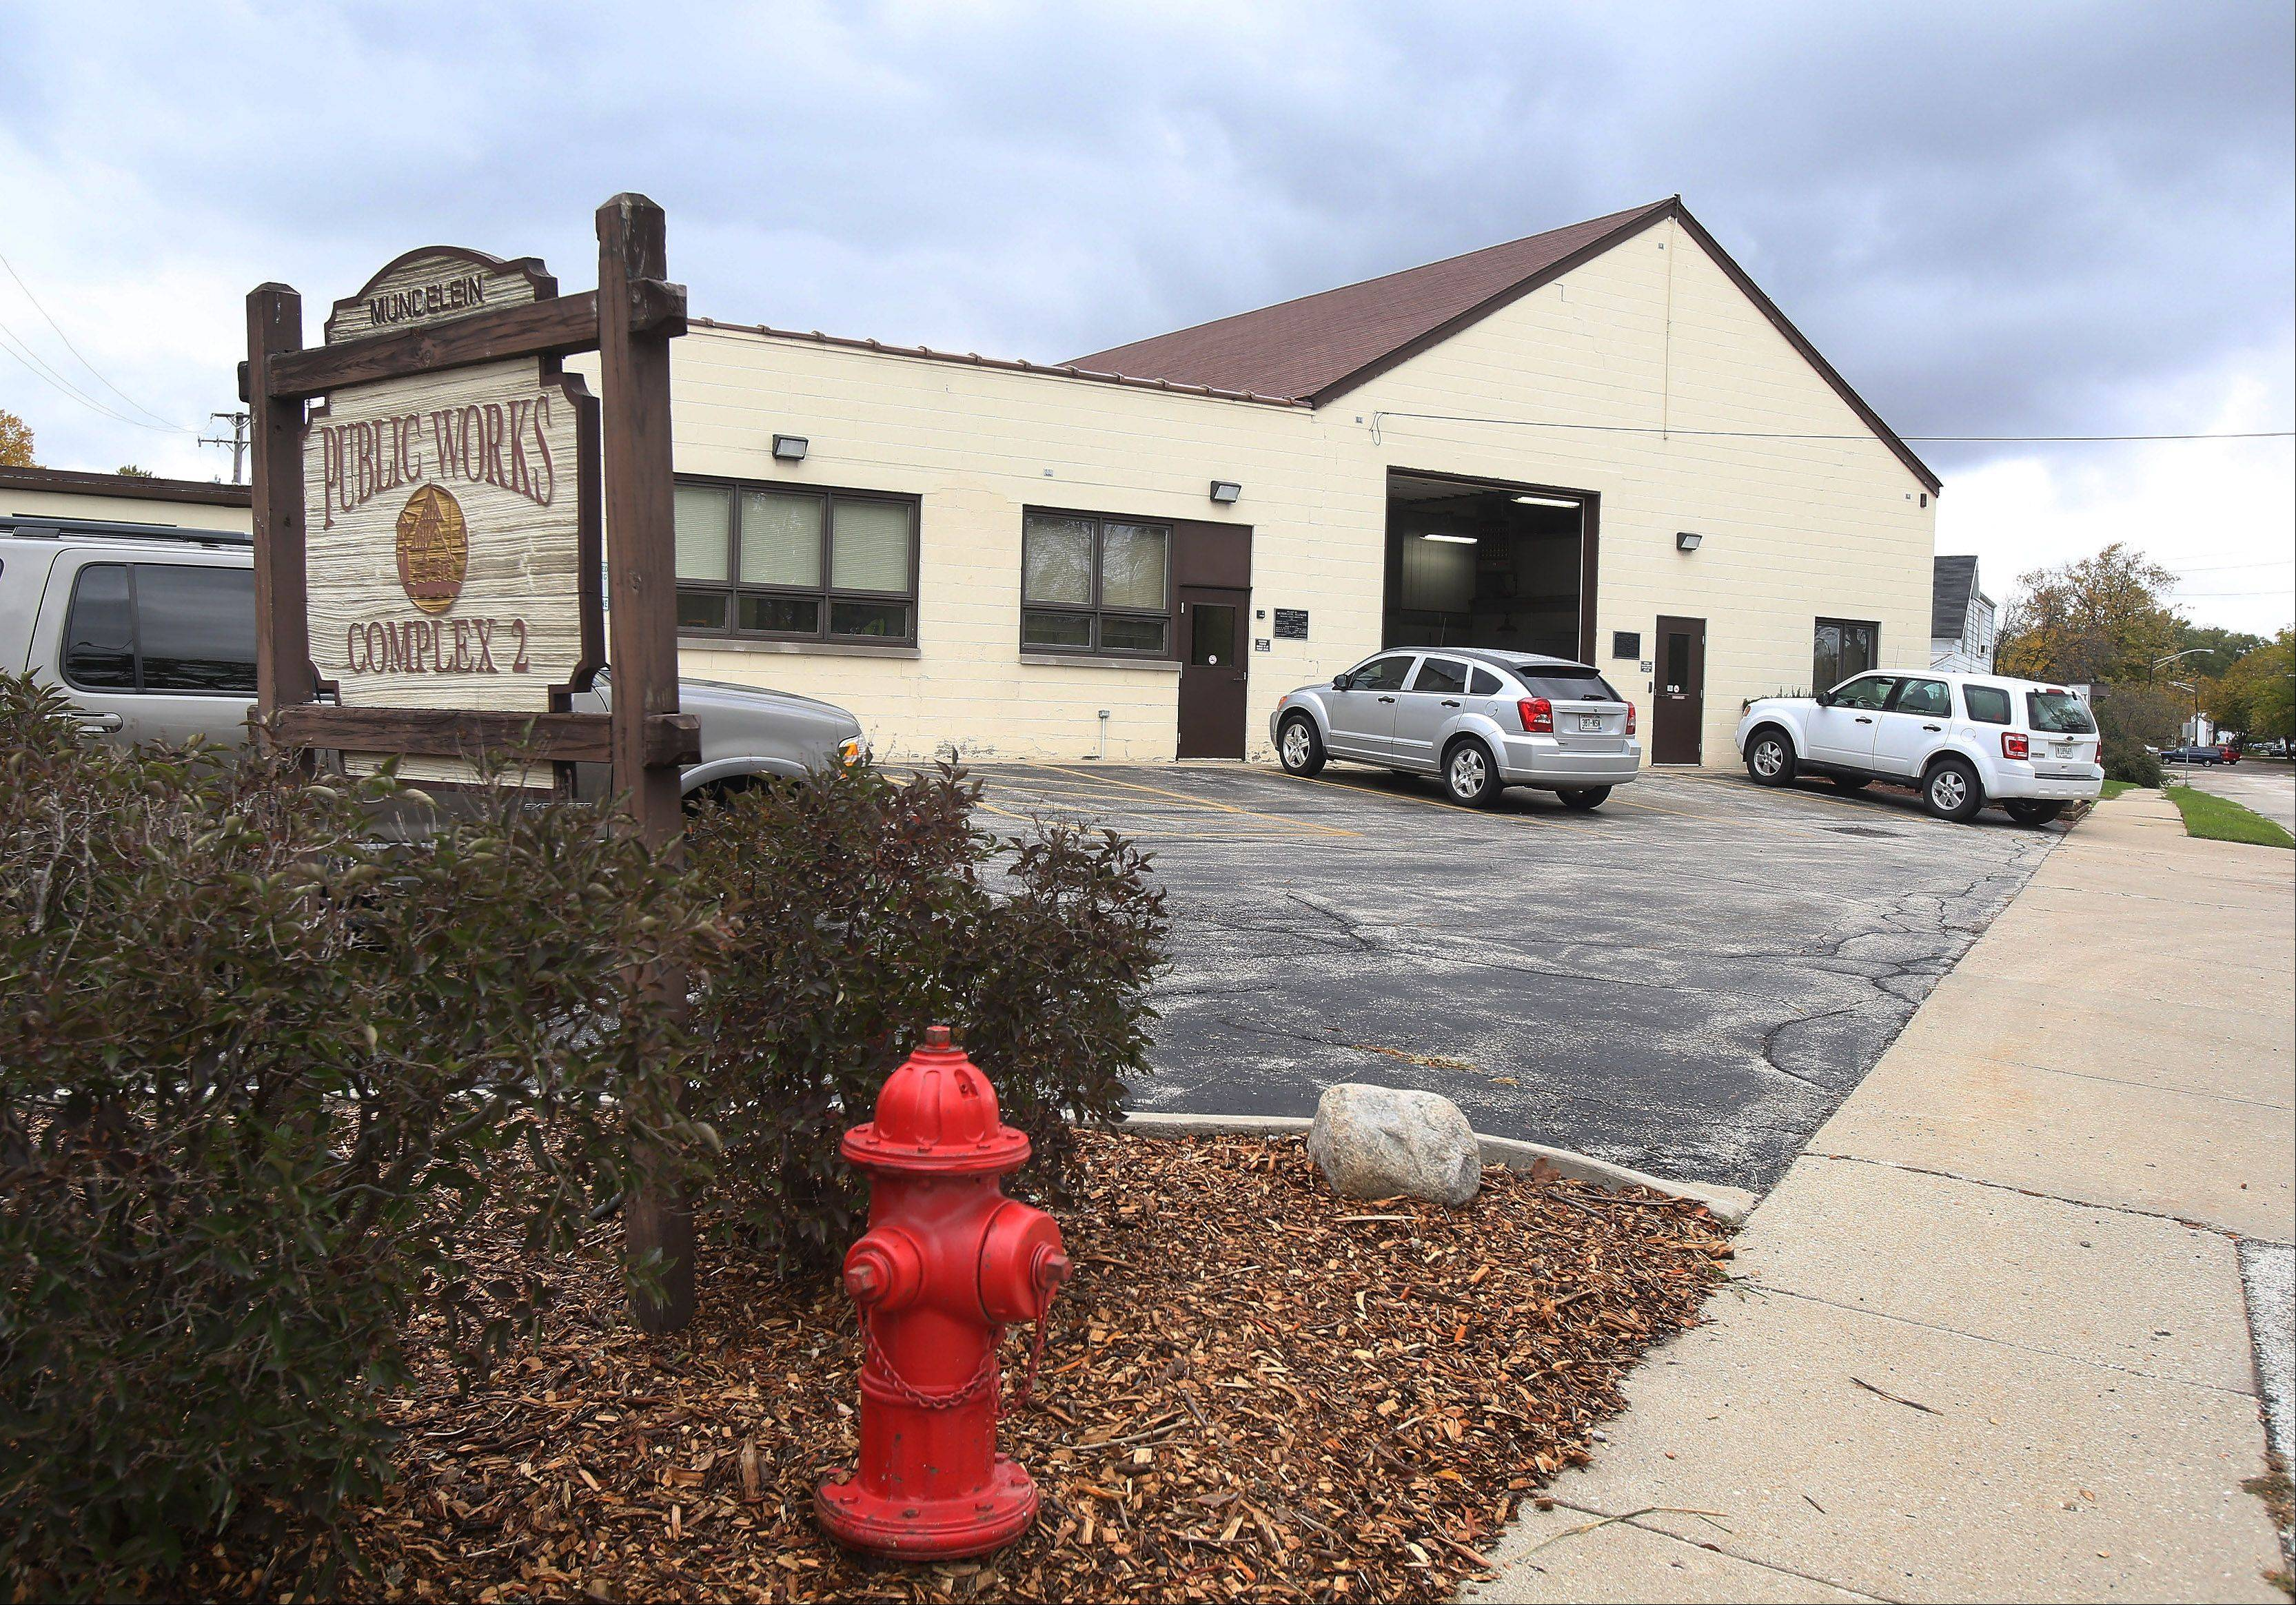 The village of Mundelein's water division headquarters at 428 N. Chicago Ave. is one of three separate public works facilities the village plans to consolidate at a single site on Allanson Road.